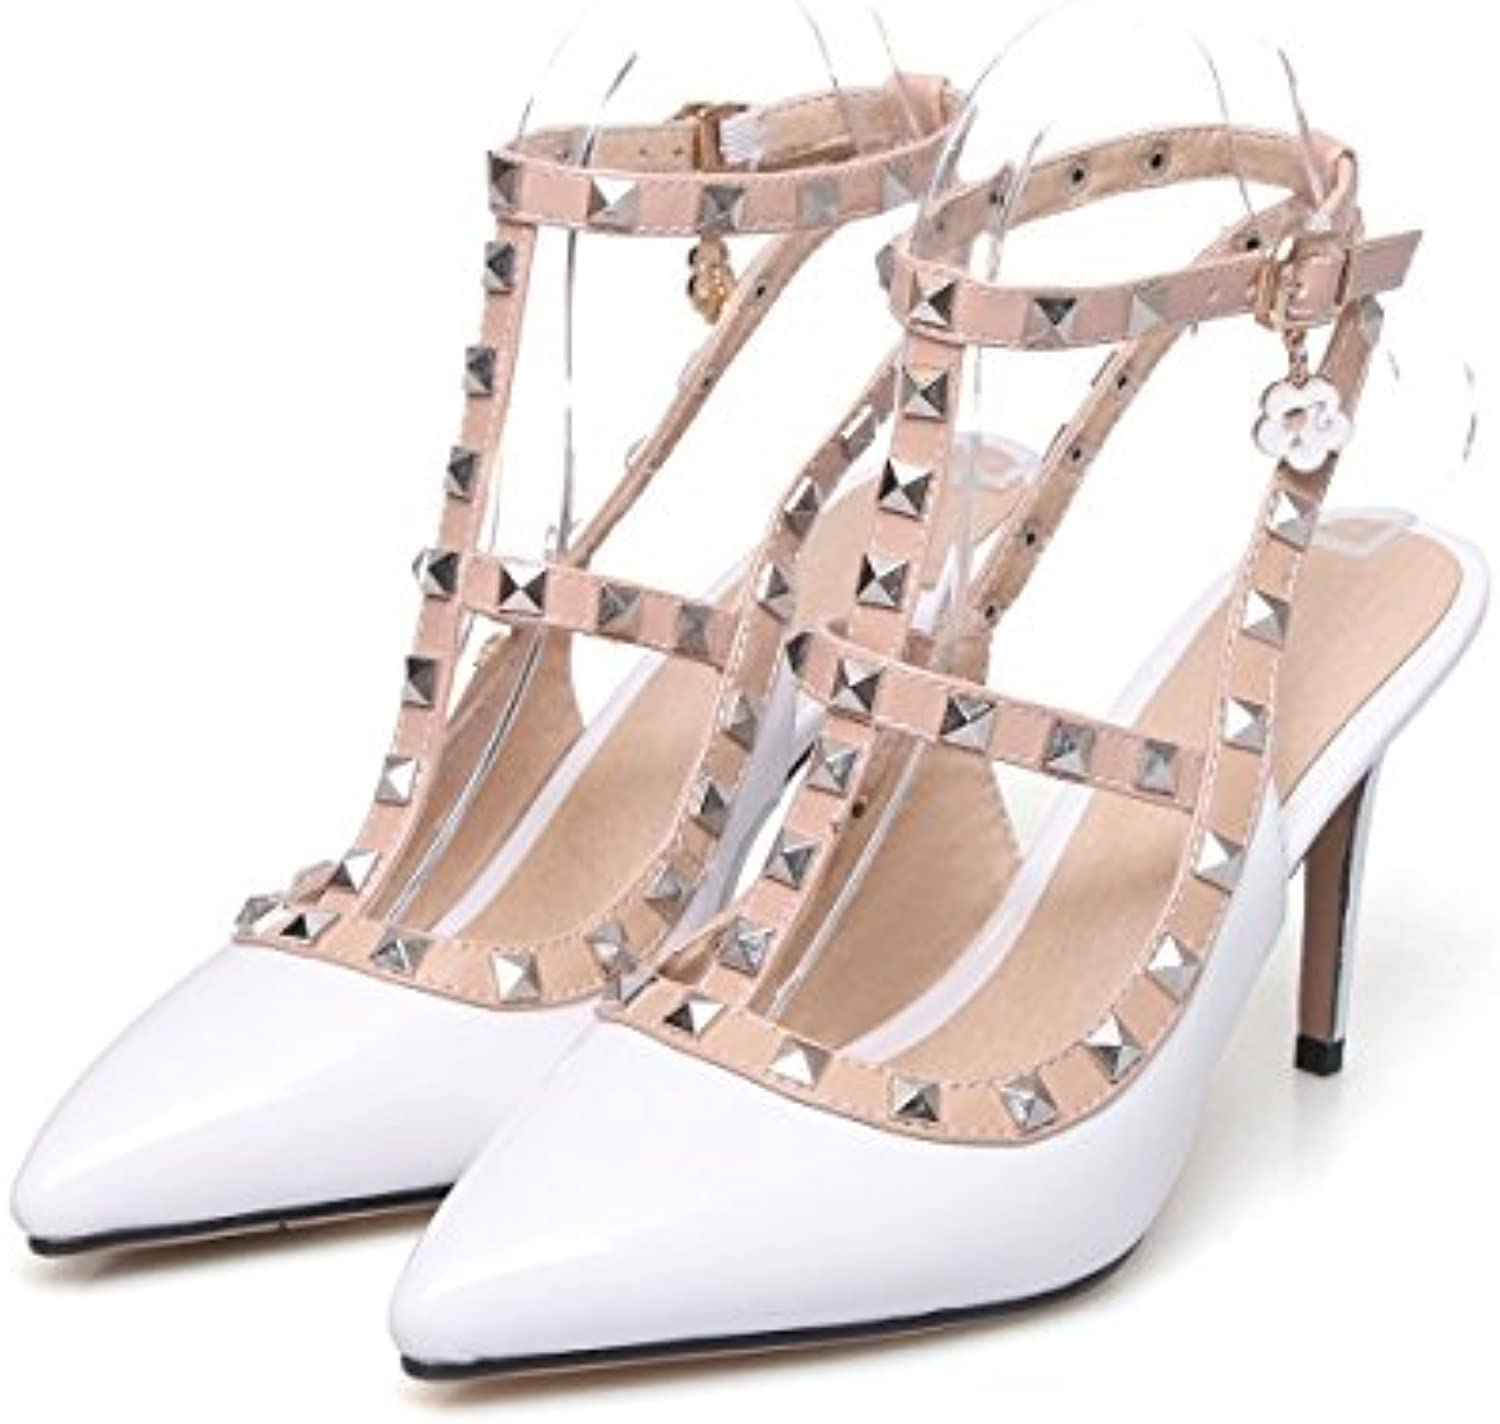 c7ac776793a K GQ K GQ K GQ sandals High Heels for Women Single Shoes Artificial PU  Stiletto Heels Pointed Rivets